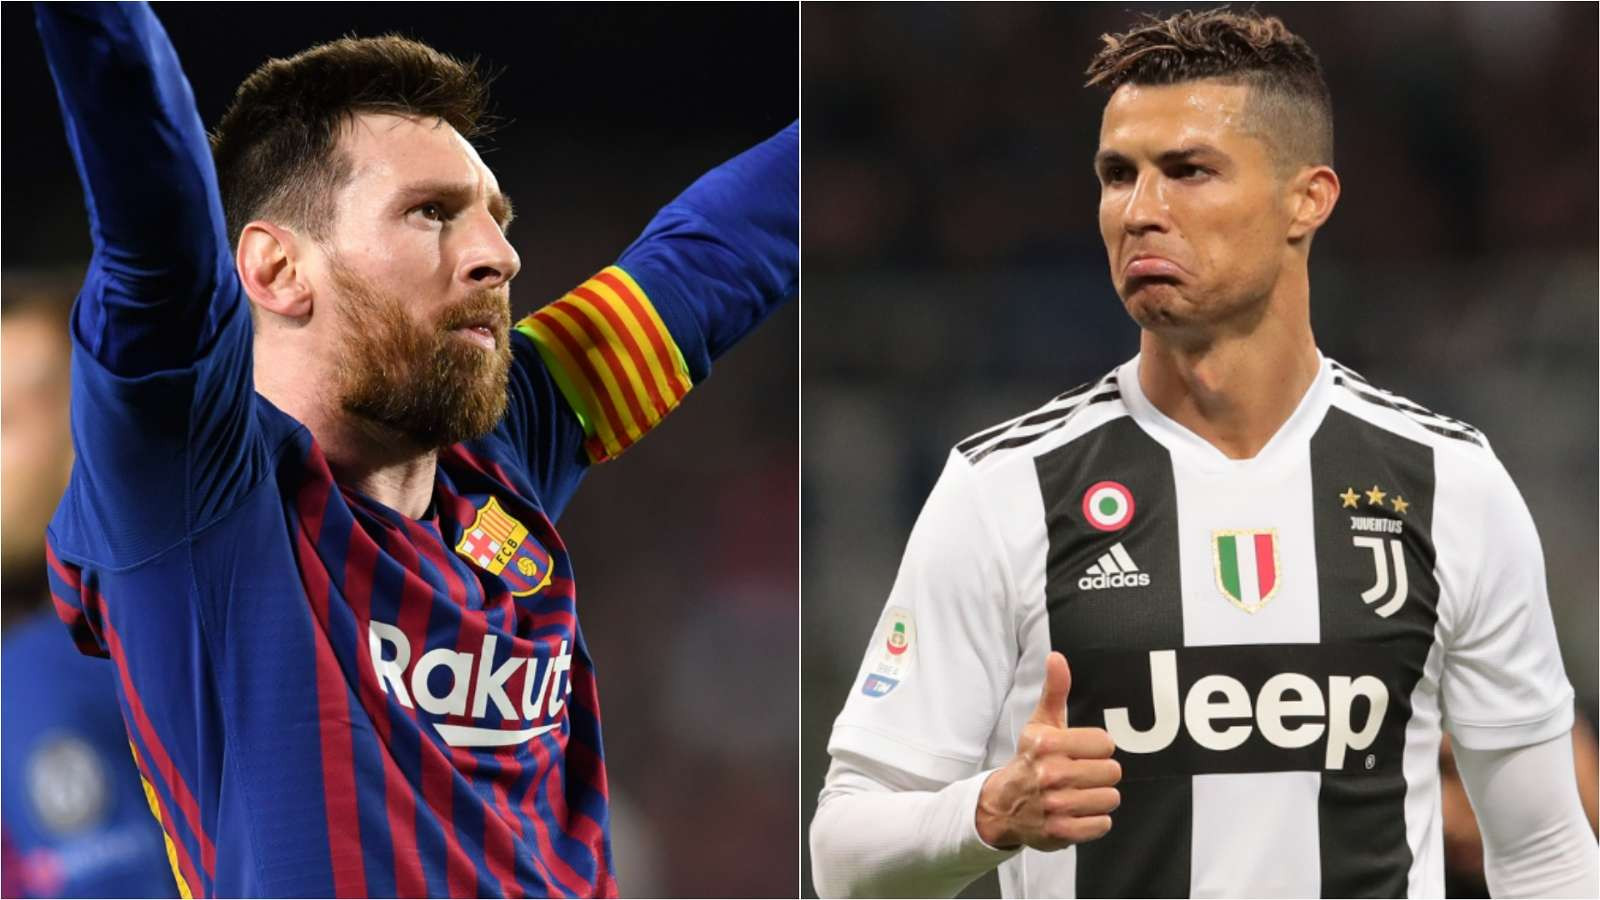 Manchester United and England's highest goalscorer, Wayne Roone, has given his input into the debate on who is the world's best player.